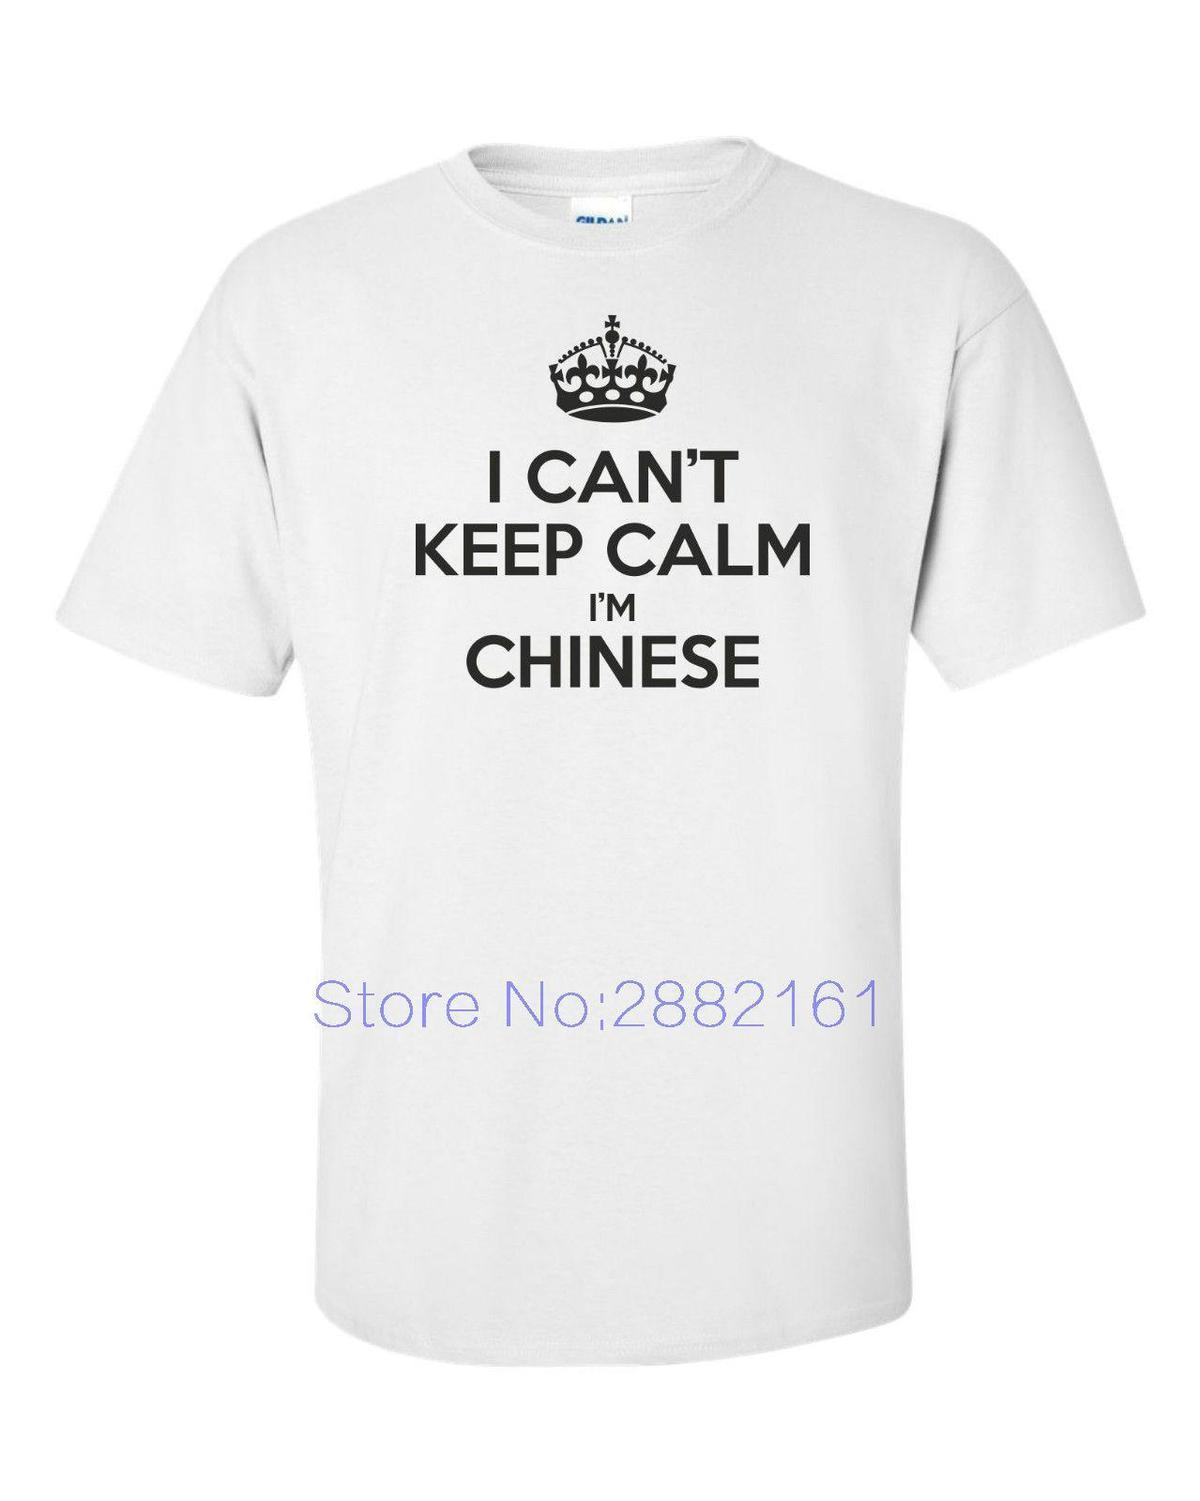 207df9c8 I CAN T KEEP CALM I M CHINESE Funny Mens T Shirt Fun Gift China Beijing  Funny O Neck T Shirt